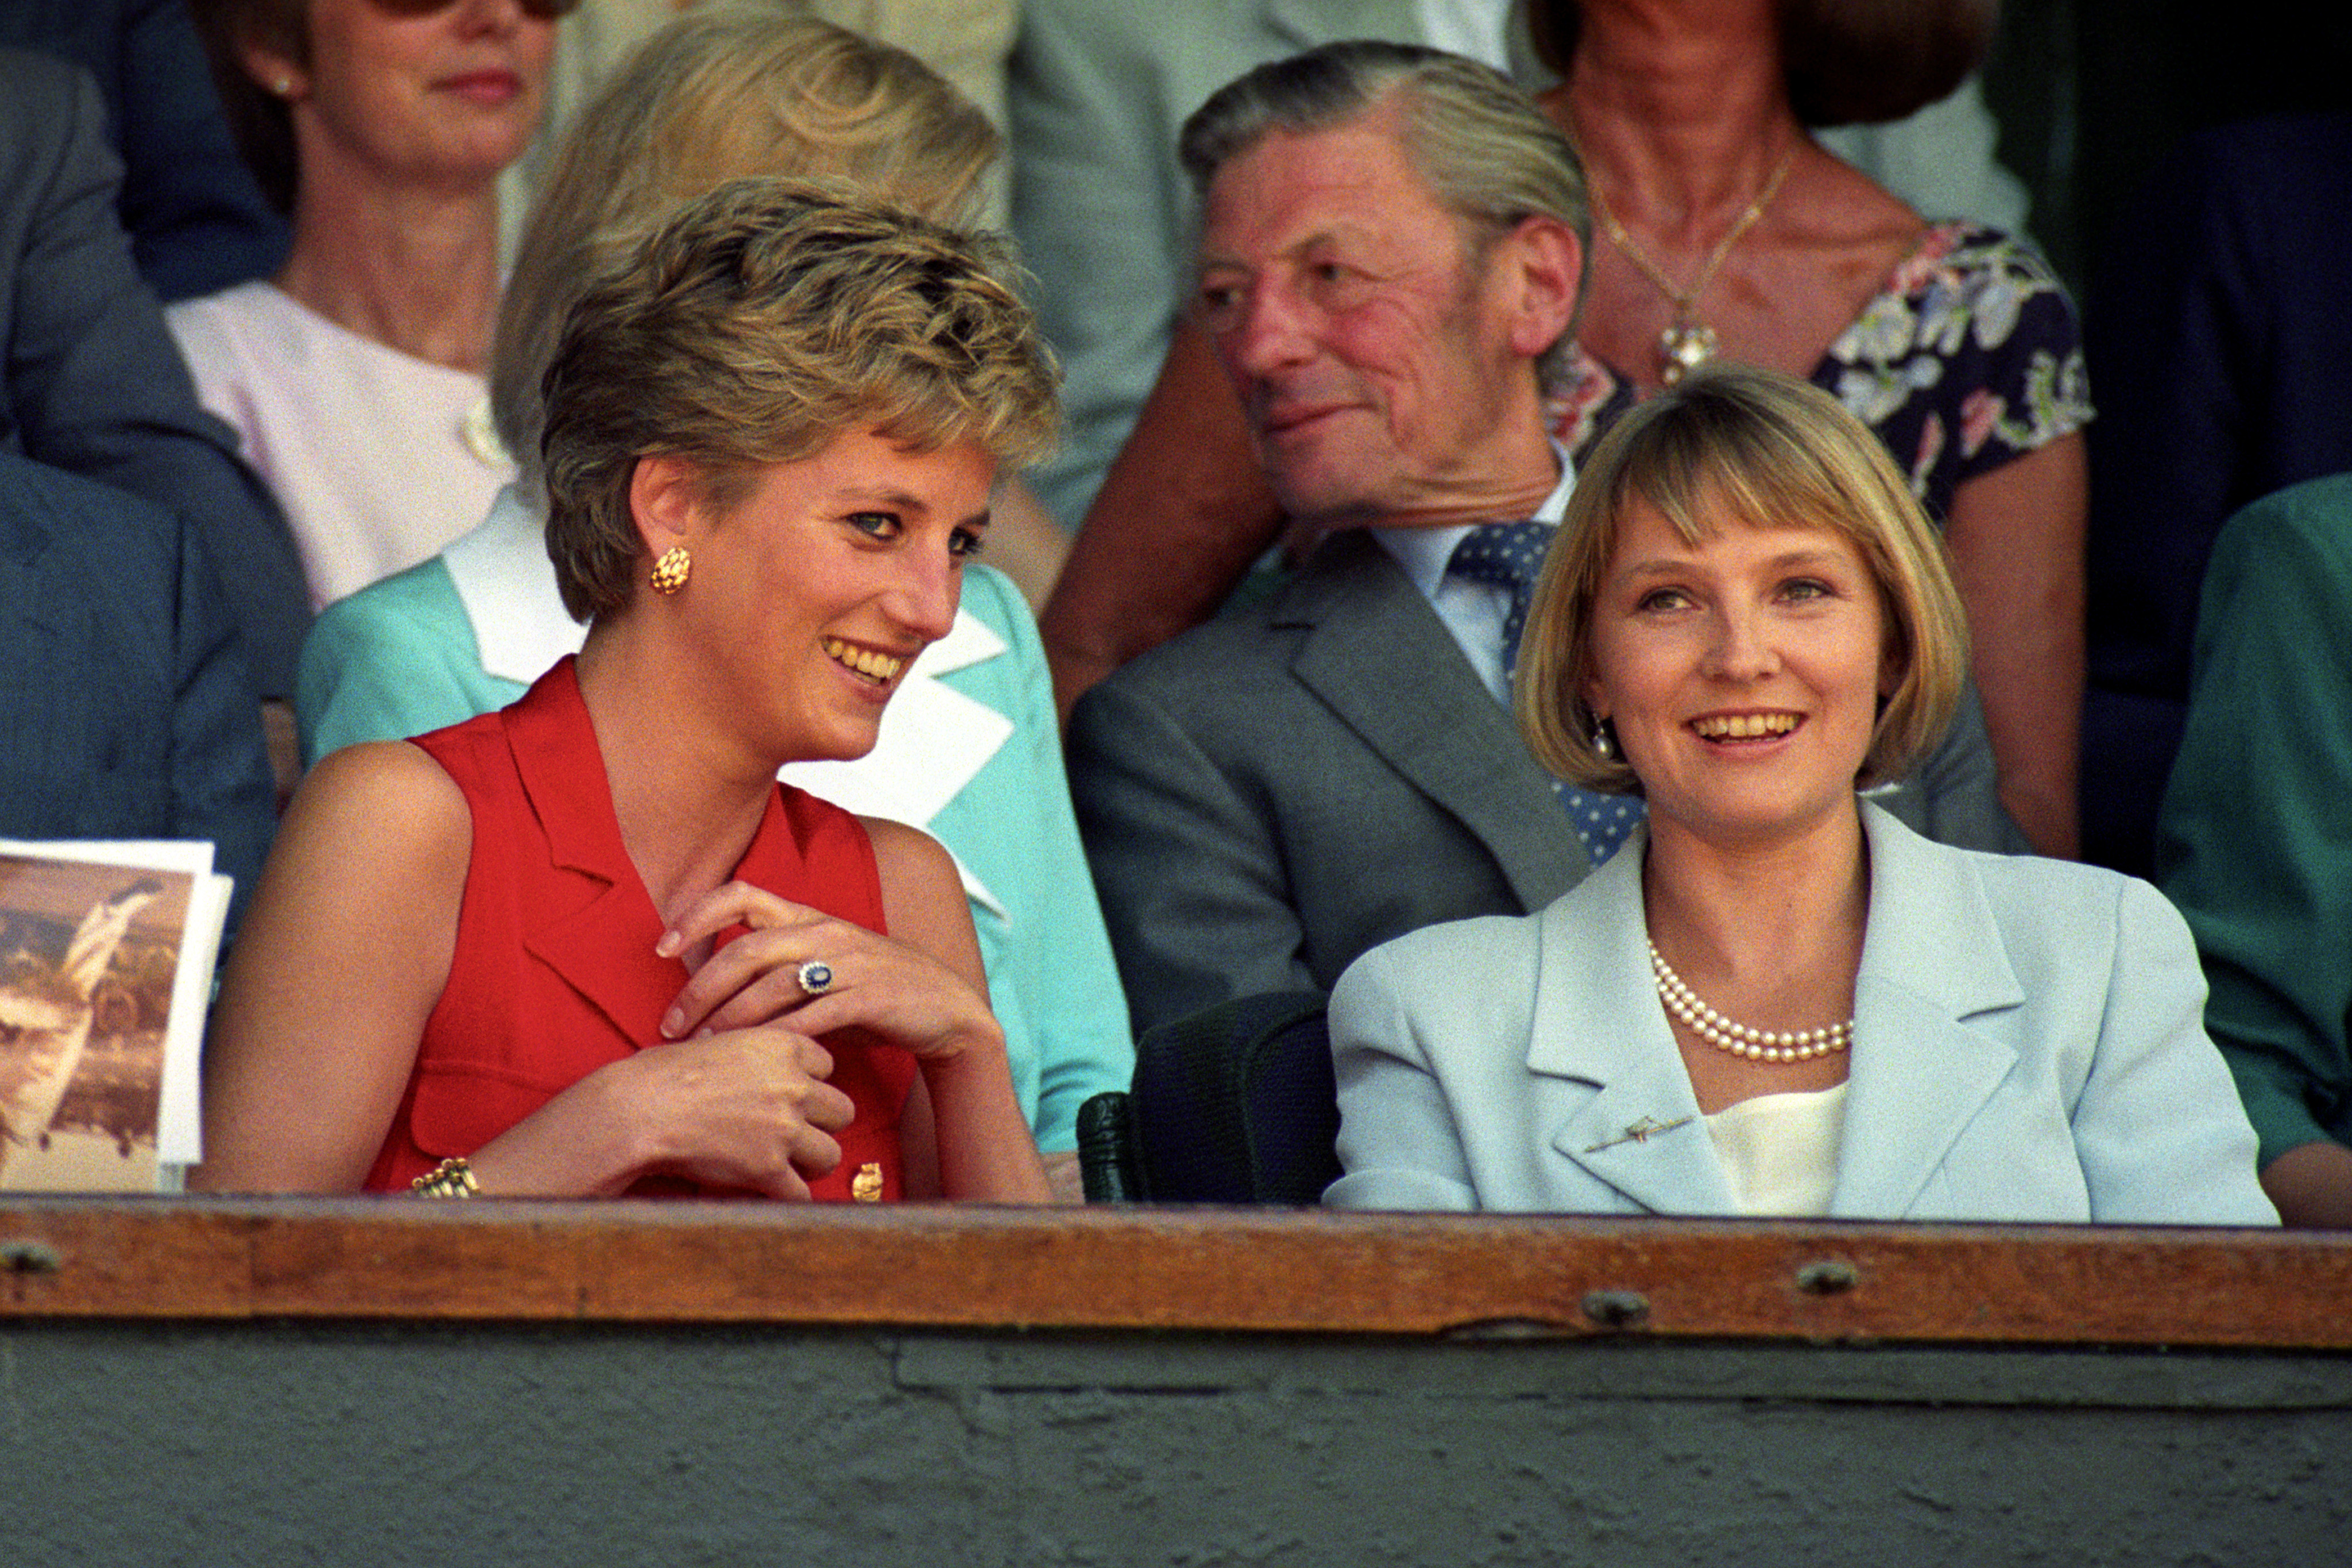 Princess of Wales chats with Mrs Julia Samuel in the royal box on centre court before the men's singles final between Pete Sampras and Goran Ivanisevic.